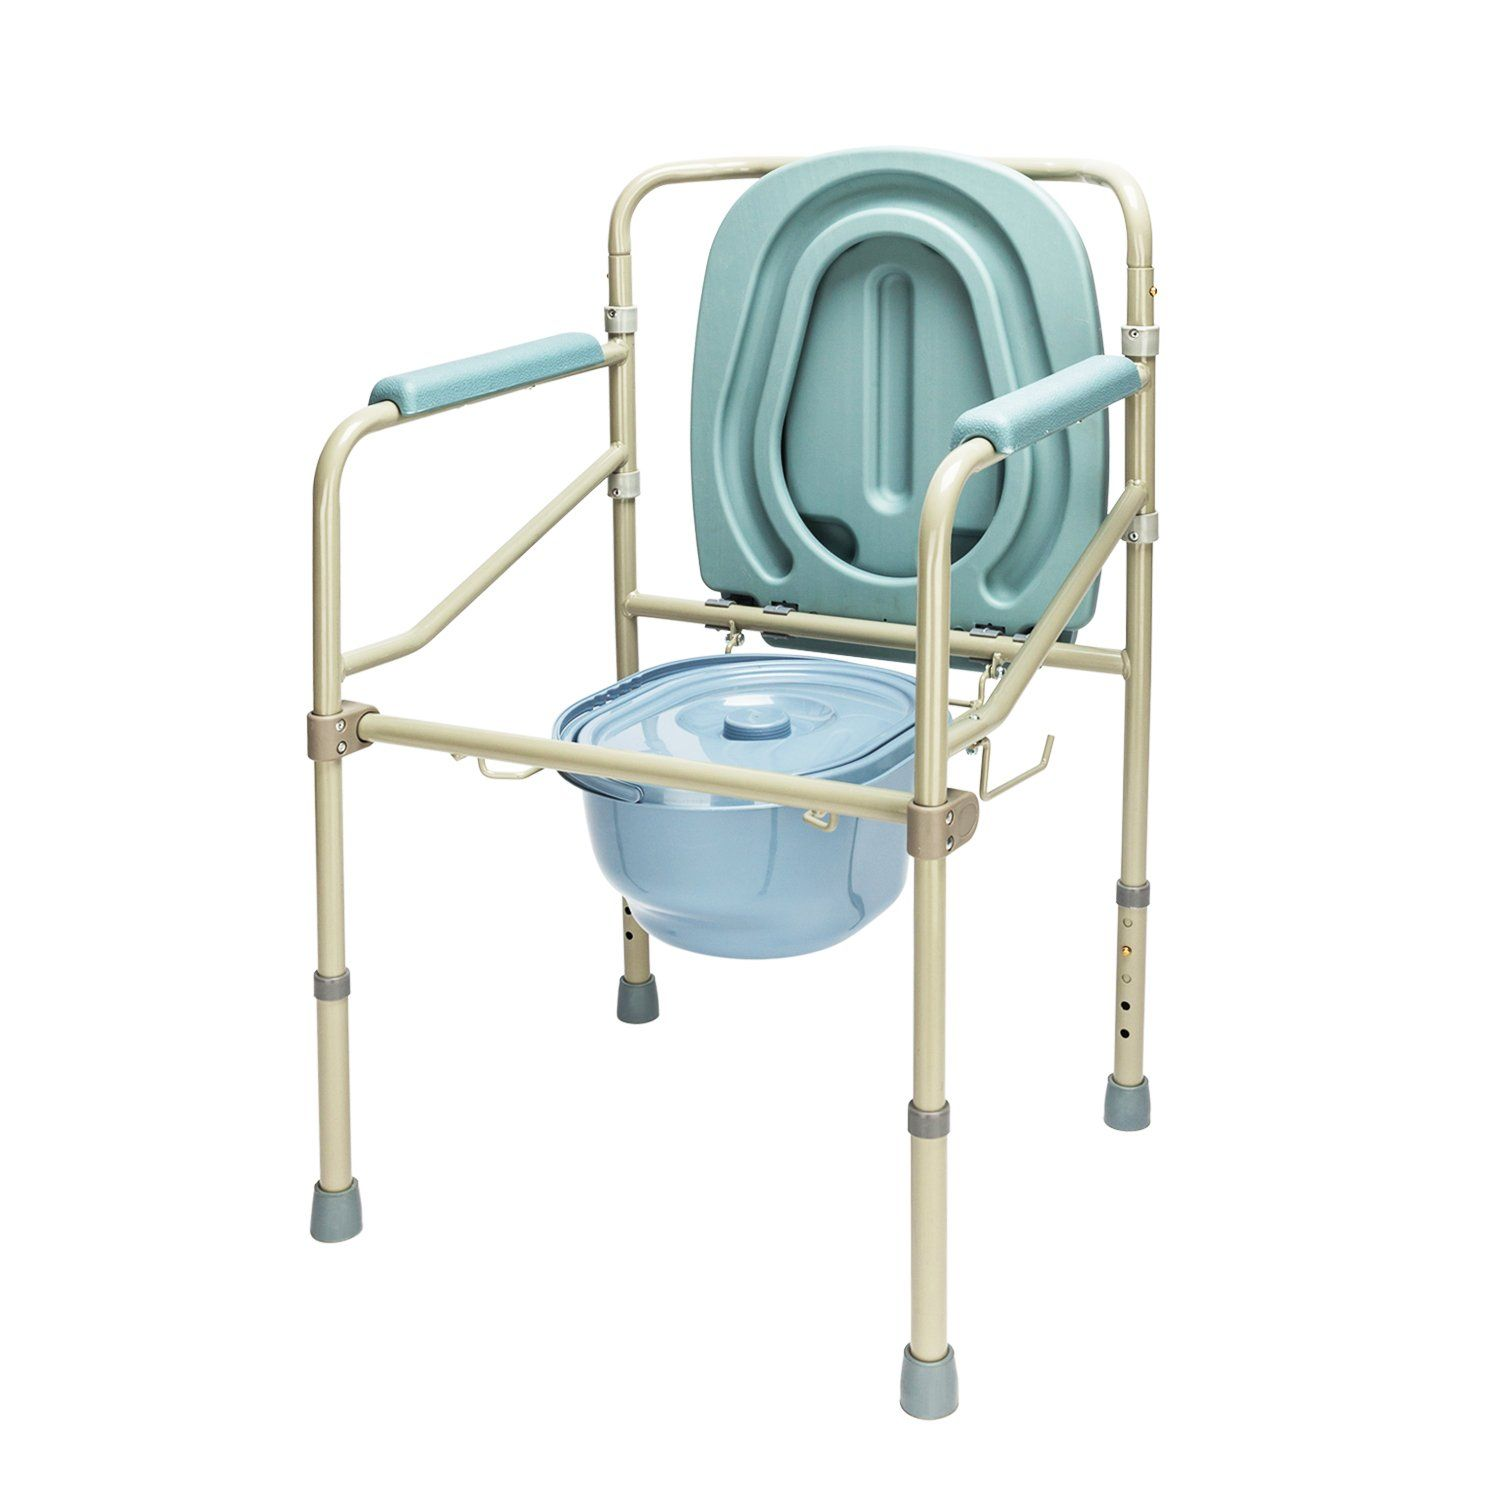 Mefeir Heavy-Duty Steel Commode Toilet Chair 330LBS, Medical Supply ...